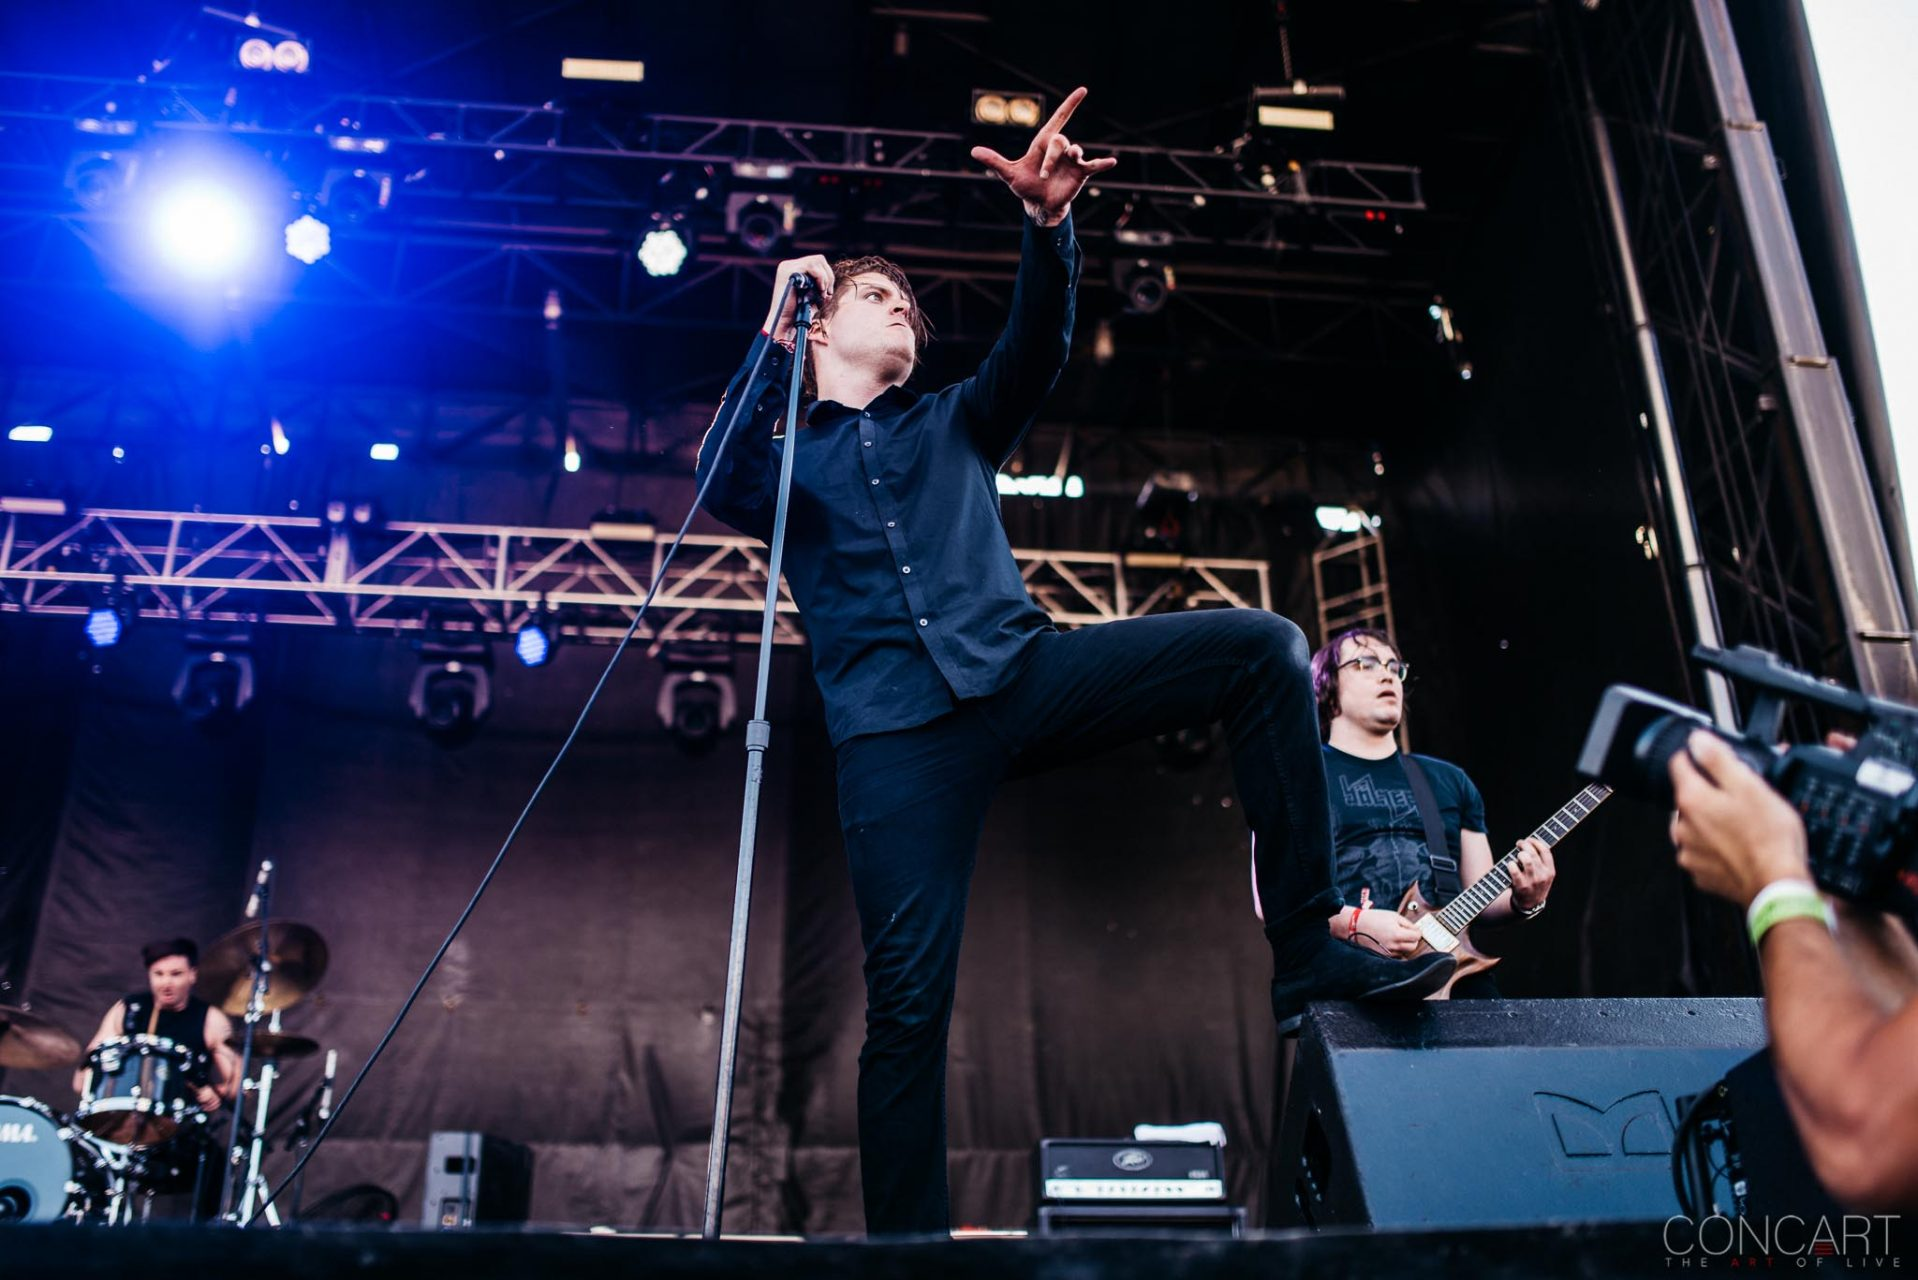 Deafheaven photo by Sean Molin 41